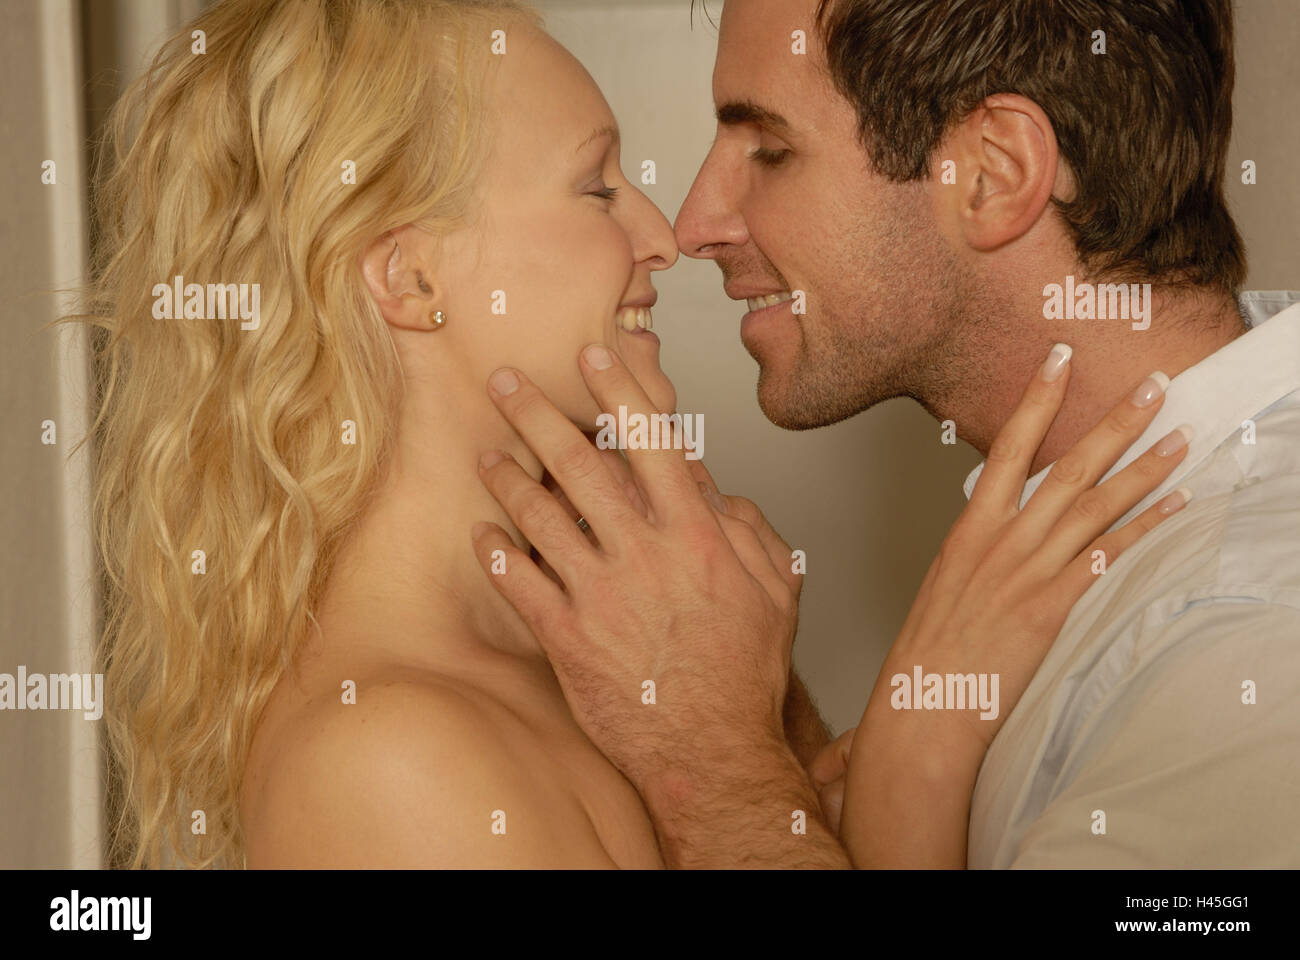 Couple, young, falls in love, touch, nasal points, side view, portrait, curled, model released, Stock Photo